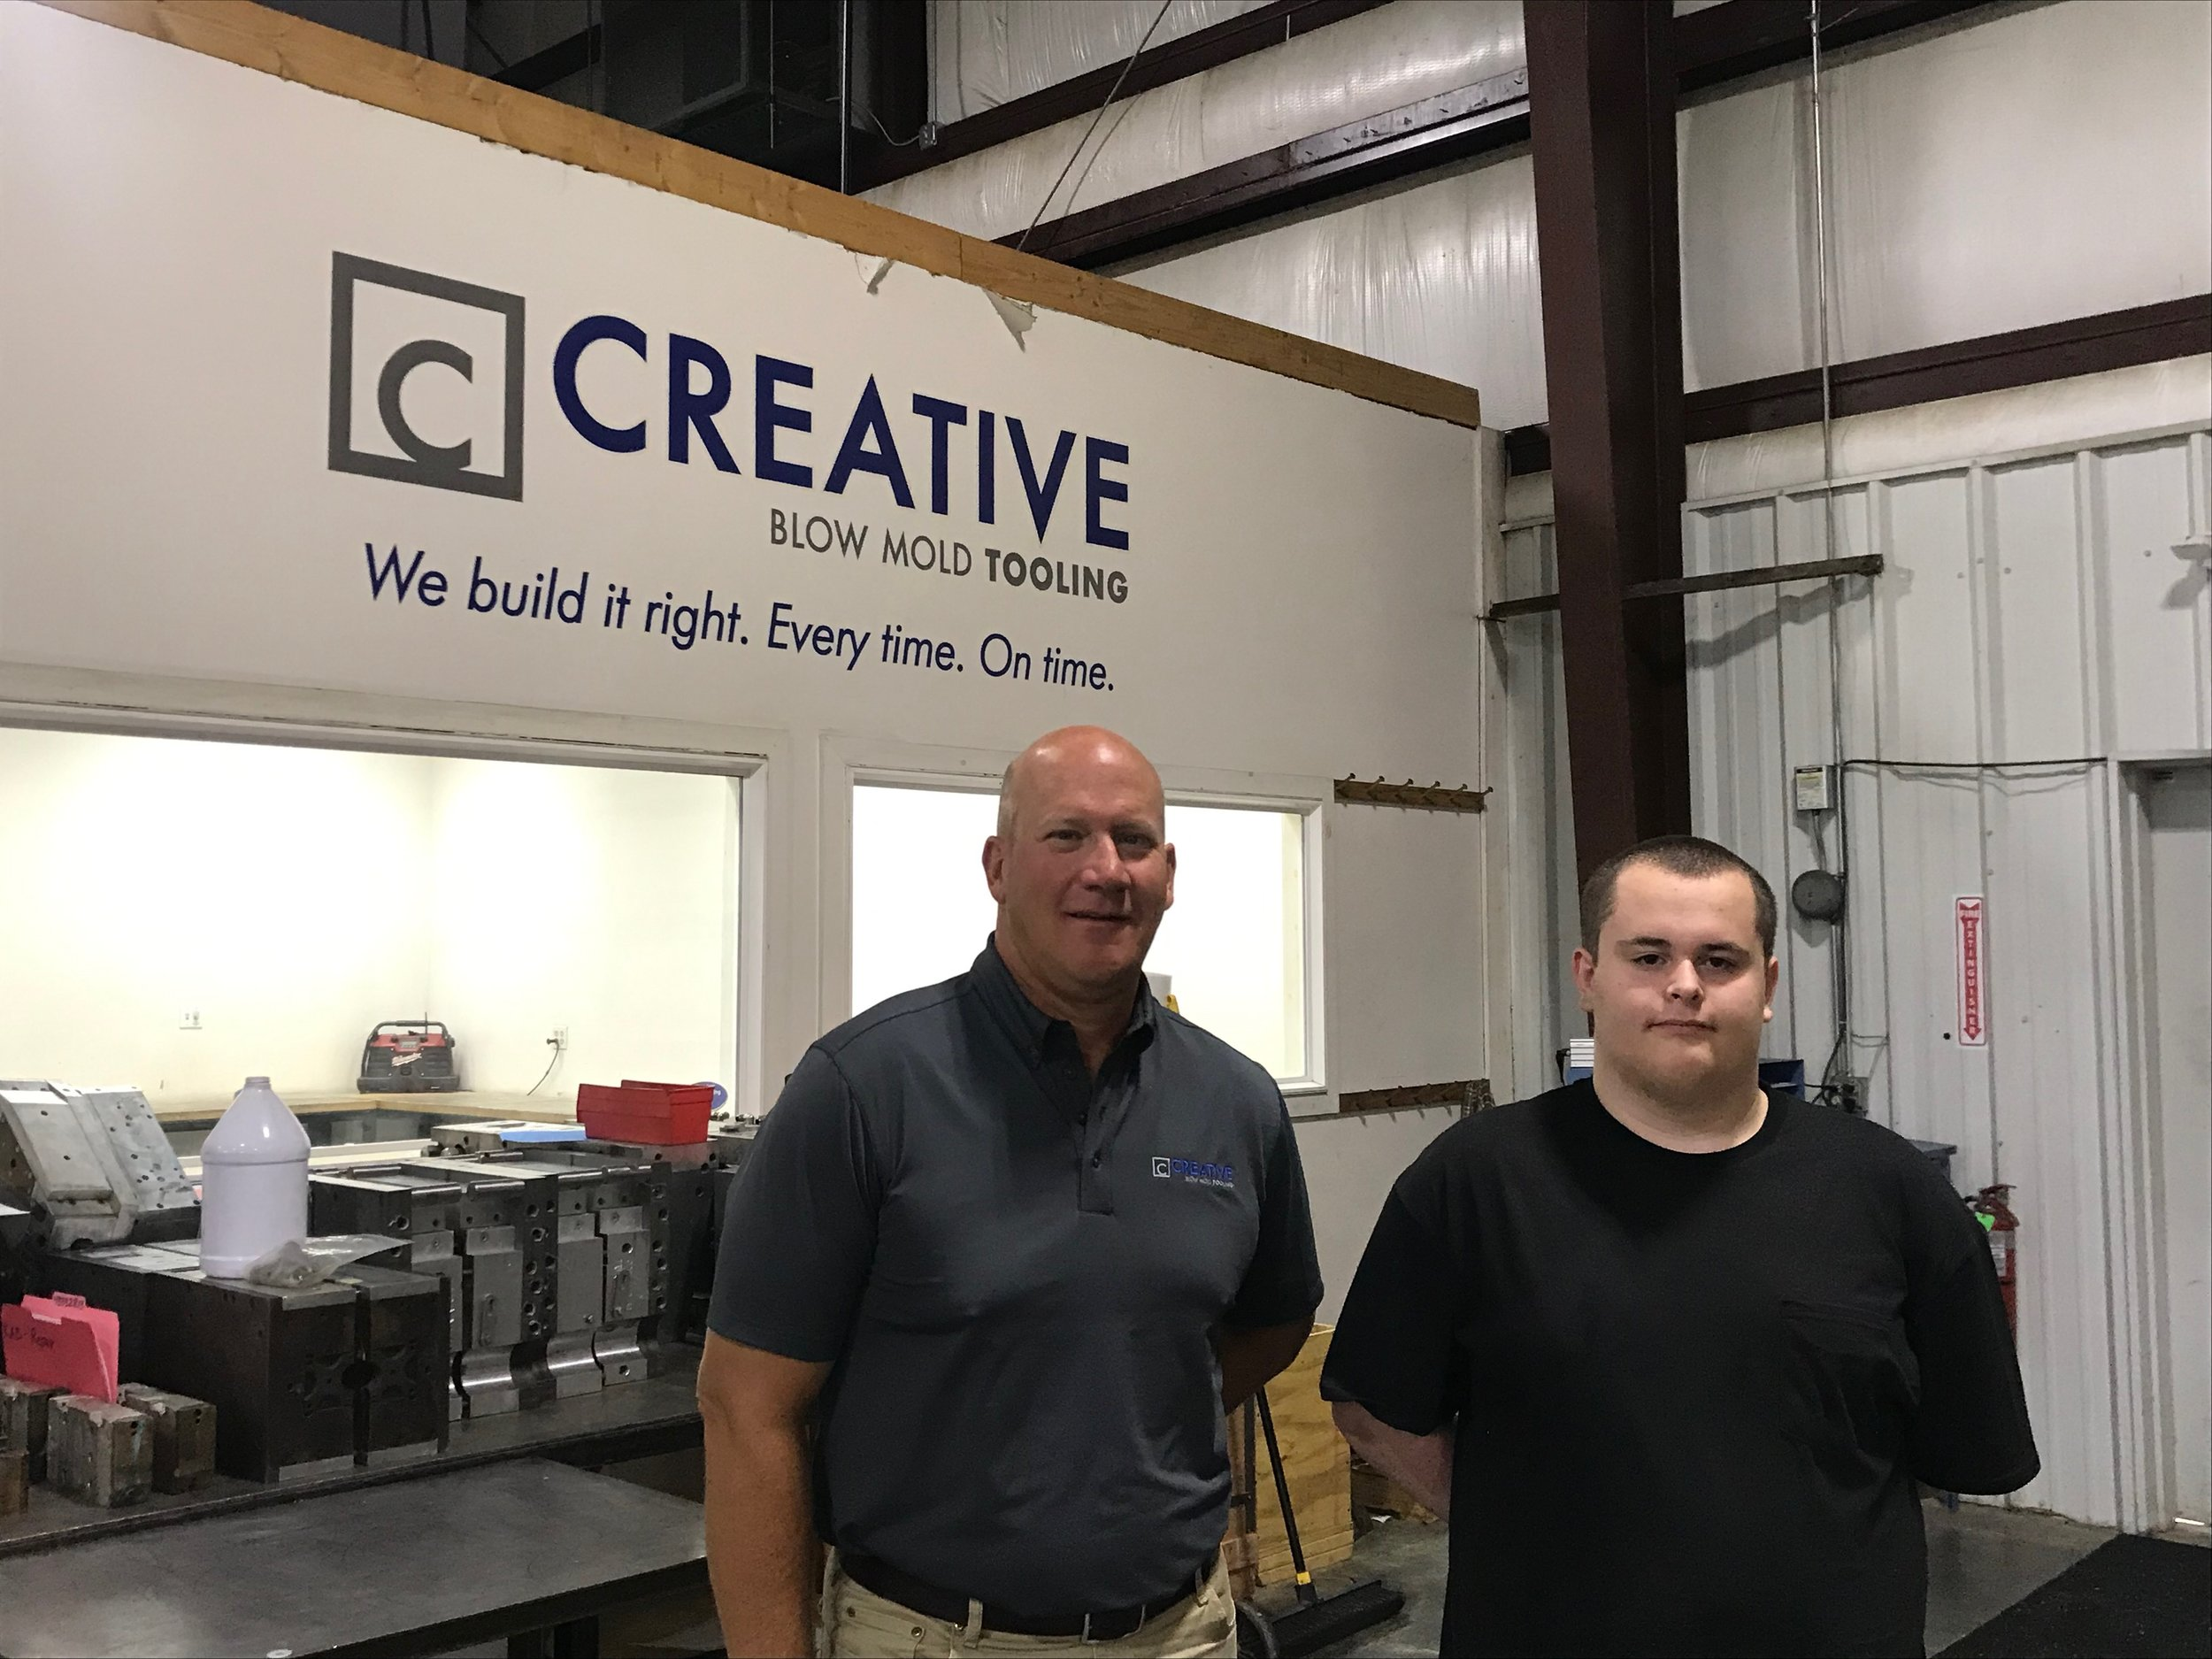 Creative Blow Mold Tooling owner Michael Bohning (left) said Colby Jacquemin's career exposure before starting at Creative Blow Mold Tooling helped him develop a mechanical aptitude that quickly made him a contributing part of the team. ( Photo courtesy Lee's Summit Economic Development Council)